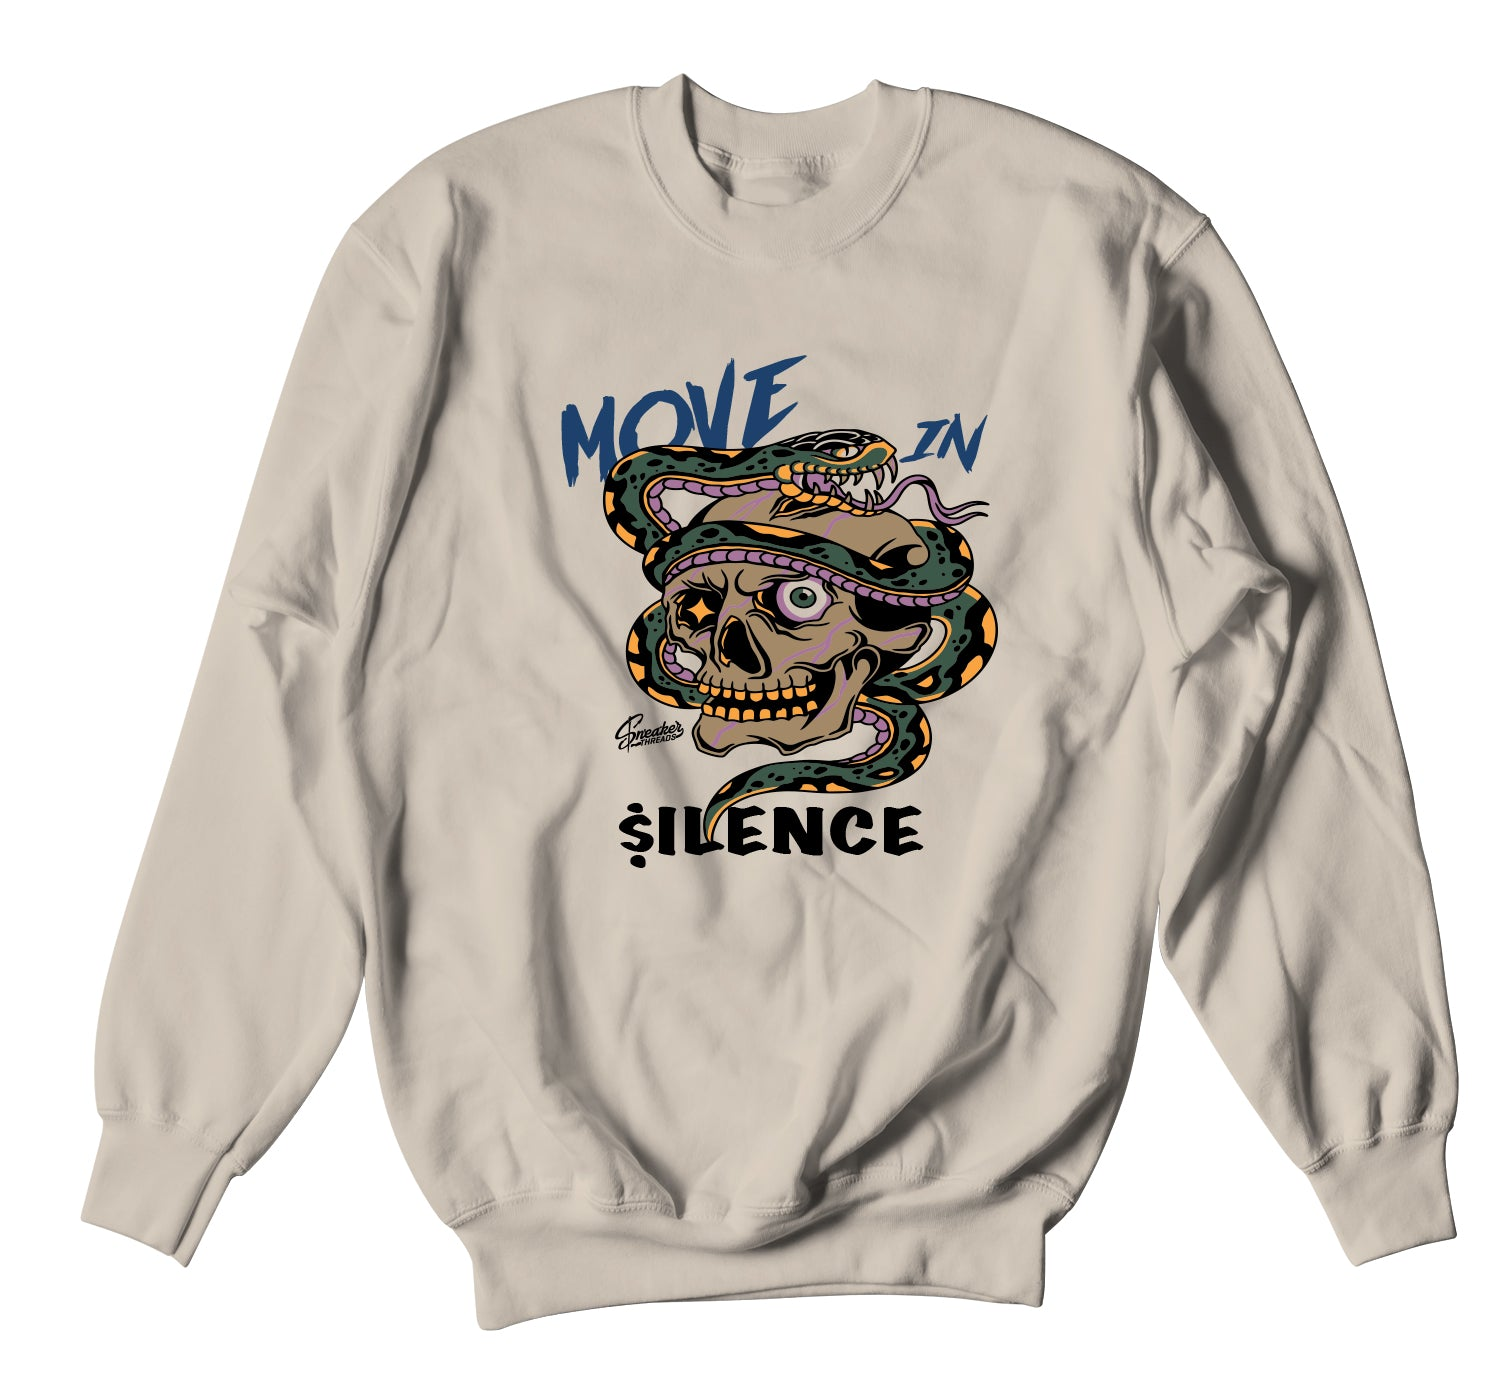 Air Force 1 Travis Scott Move In Silence Sweater